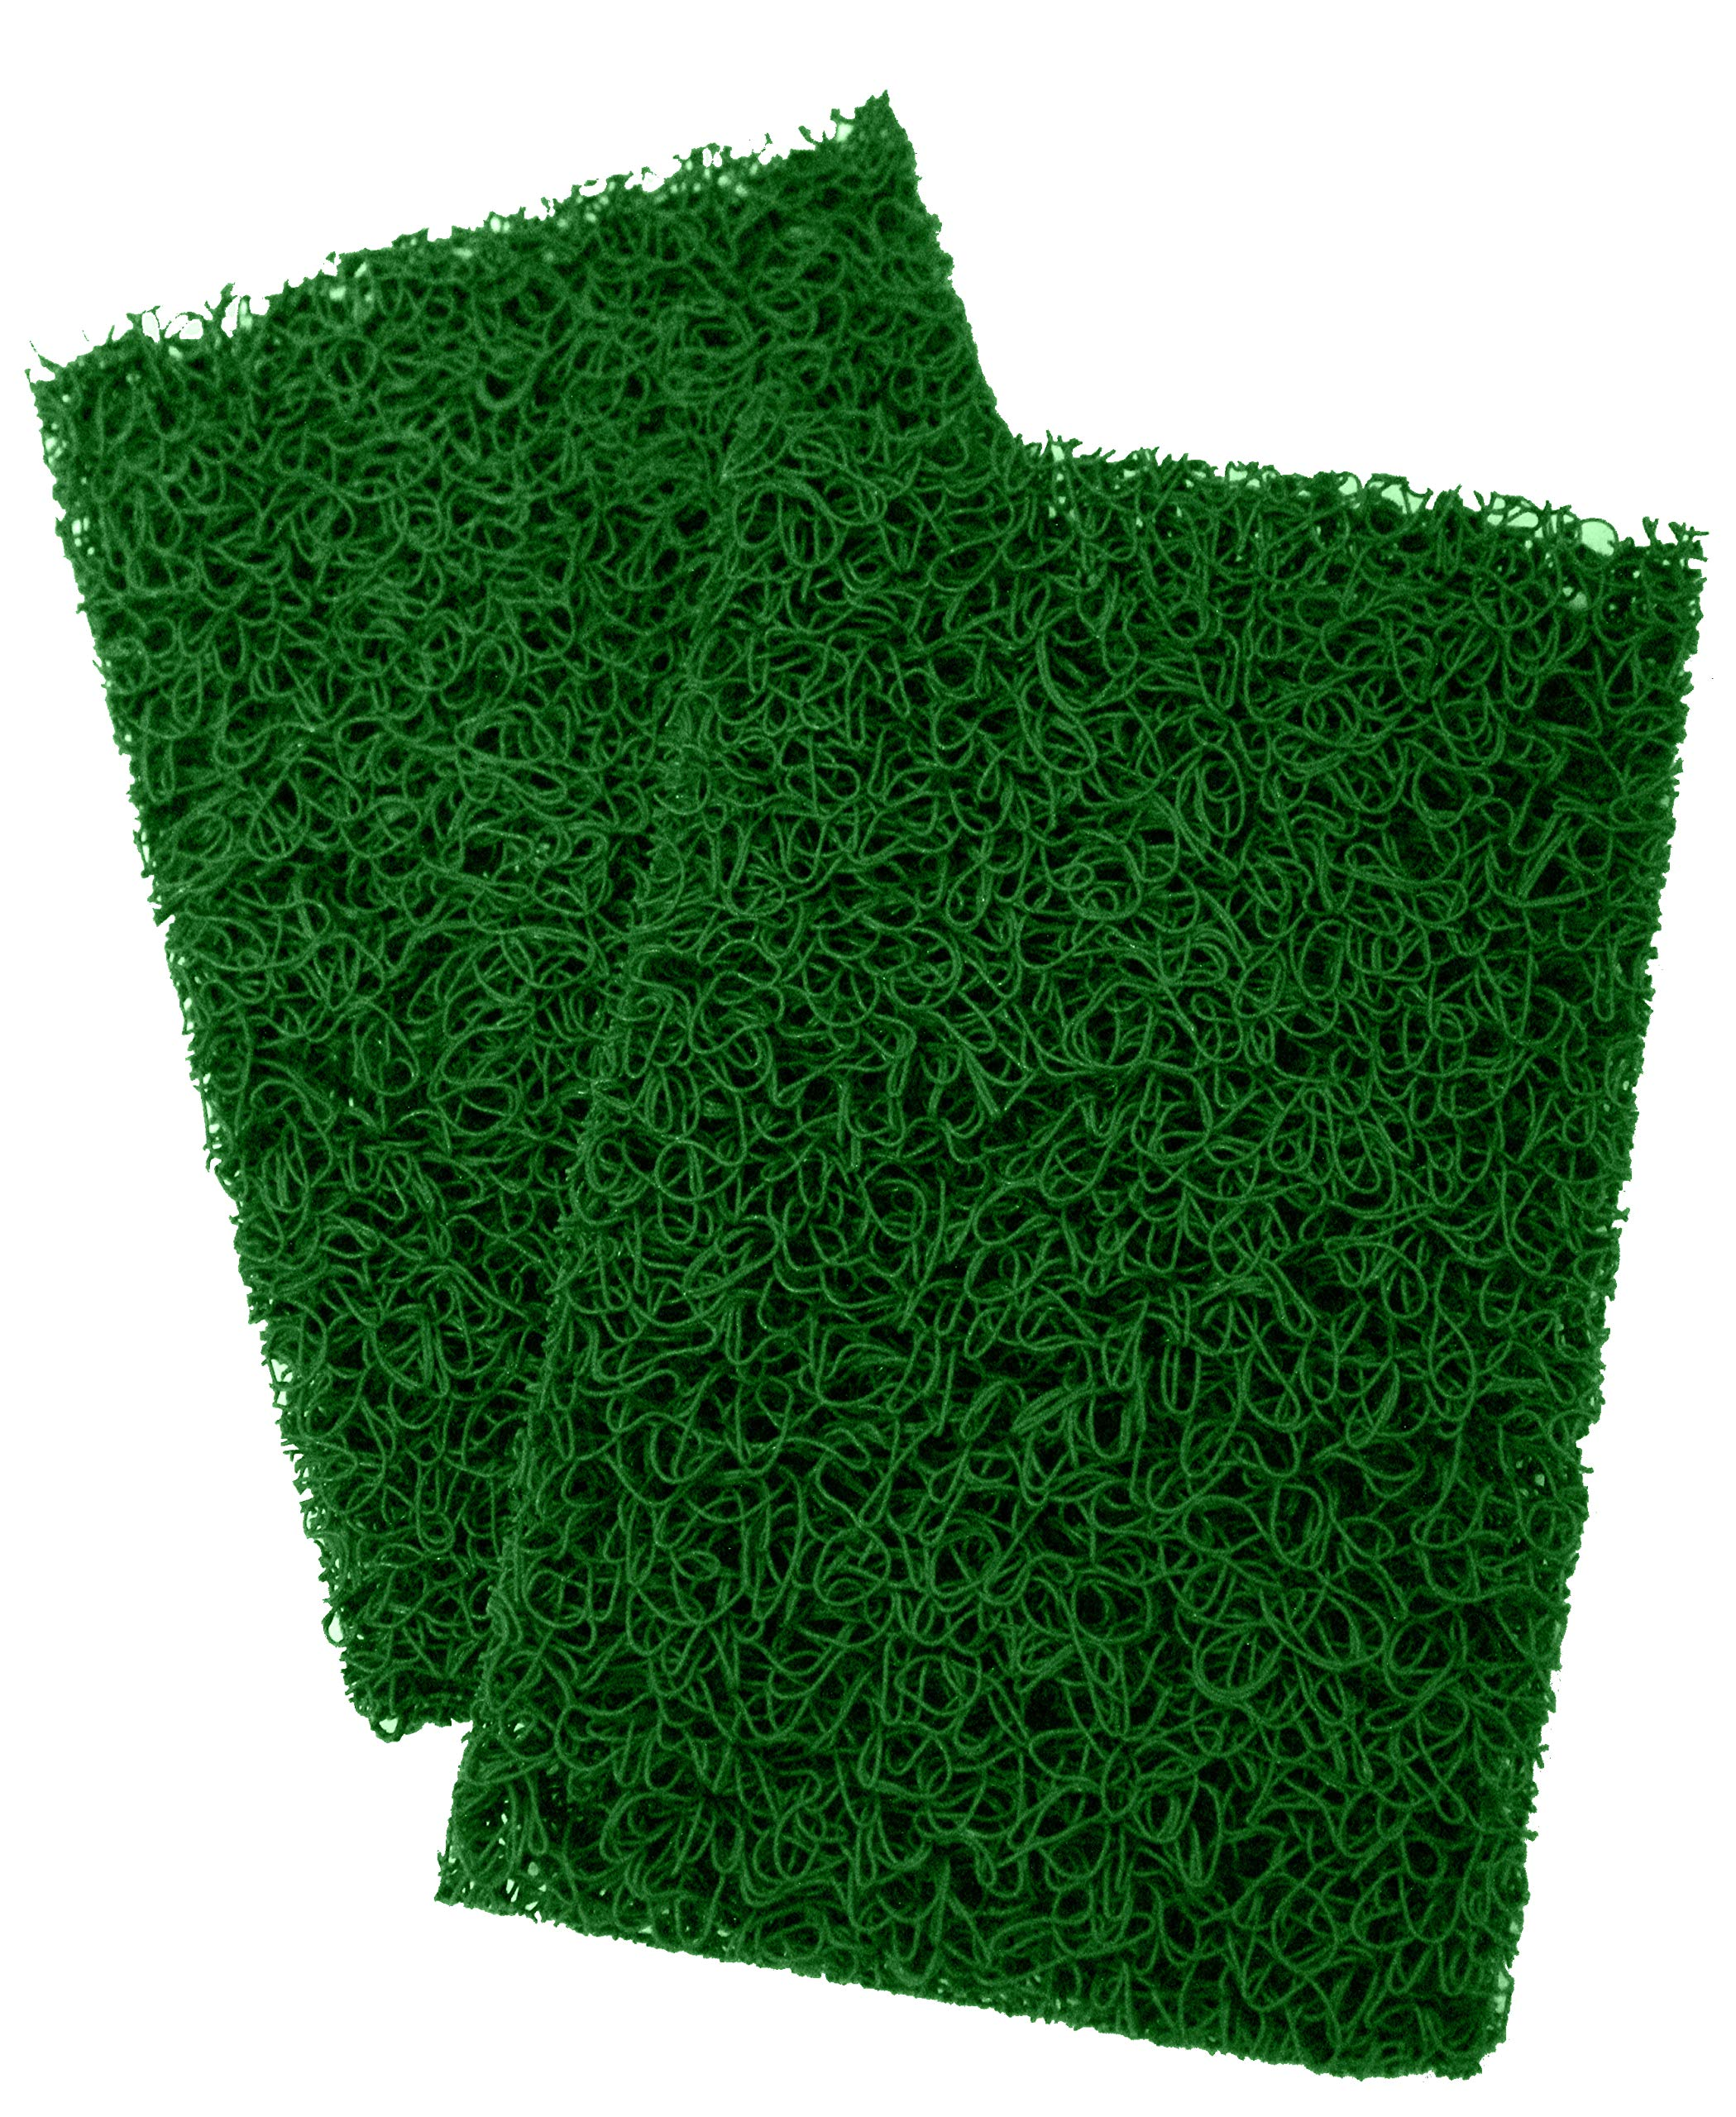 Sluice Fox 2 Pack Replacement Miner's Moss Green for Portable Modular Sluice Box by Sluice Fox (Image #1)